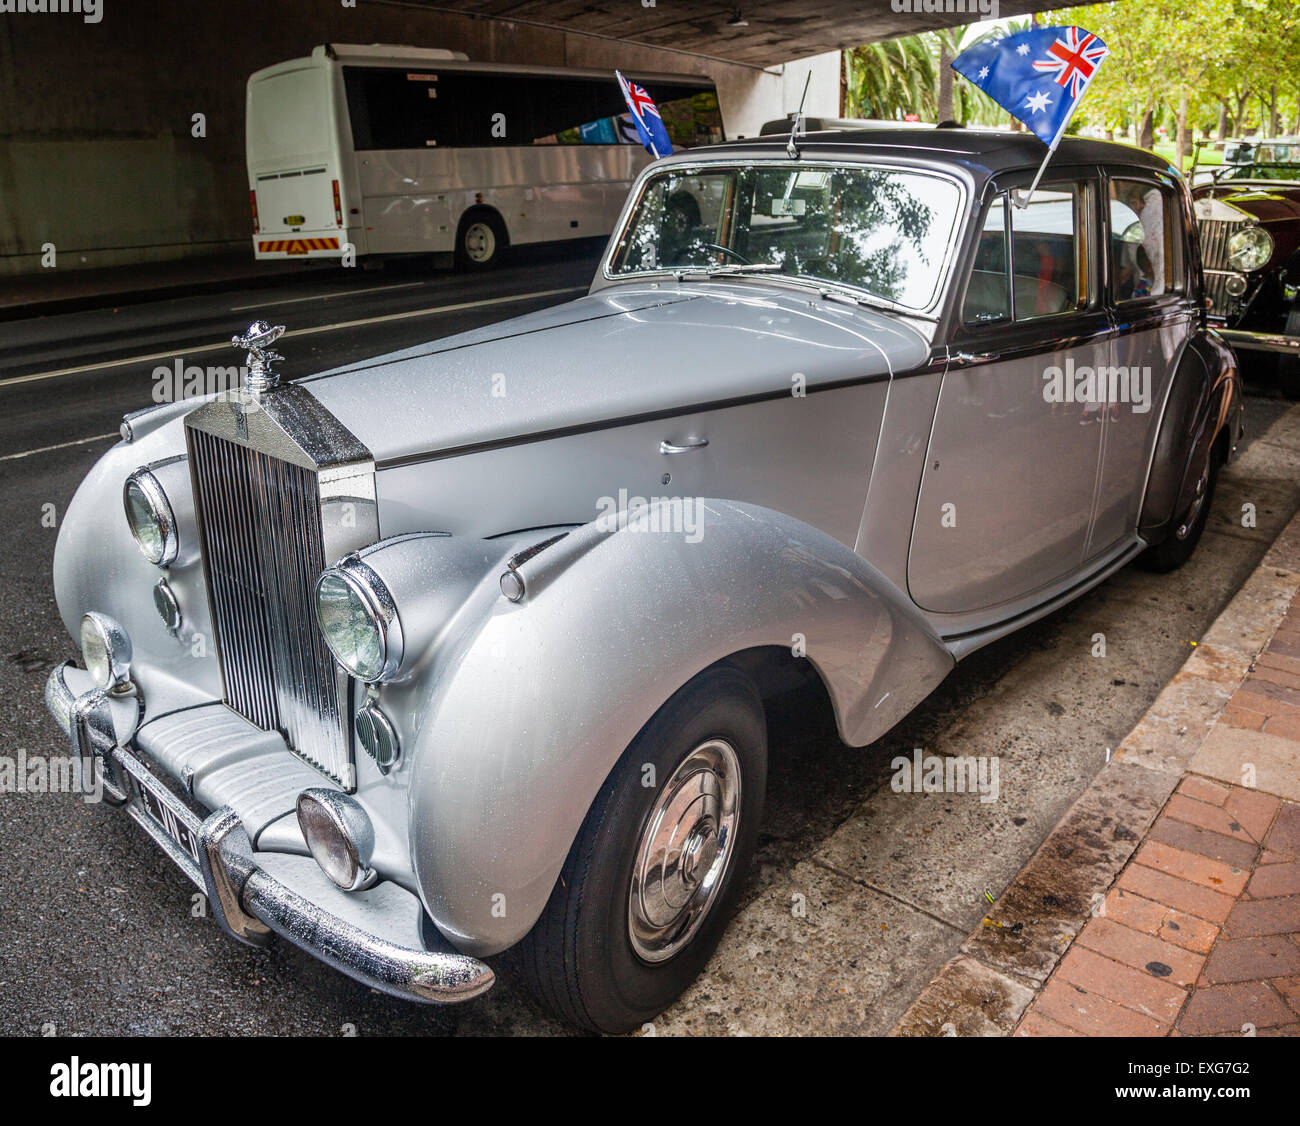 Australien, New South Wales, Sydney, Rolls-Royce Phantom motor Oldtimer, ausgestellt in der Macquarie Street während Stockbild